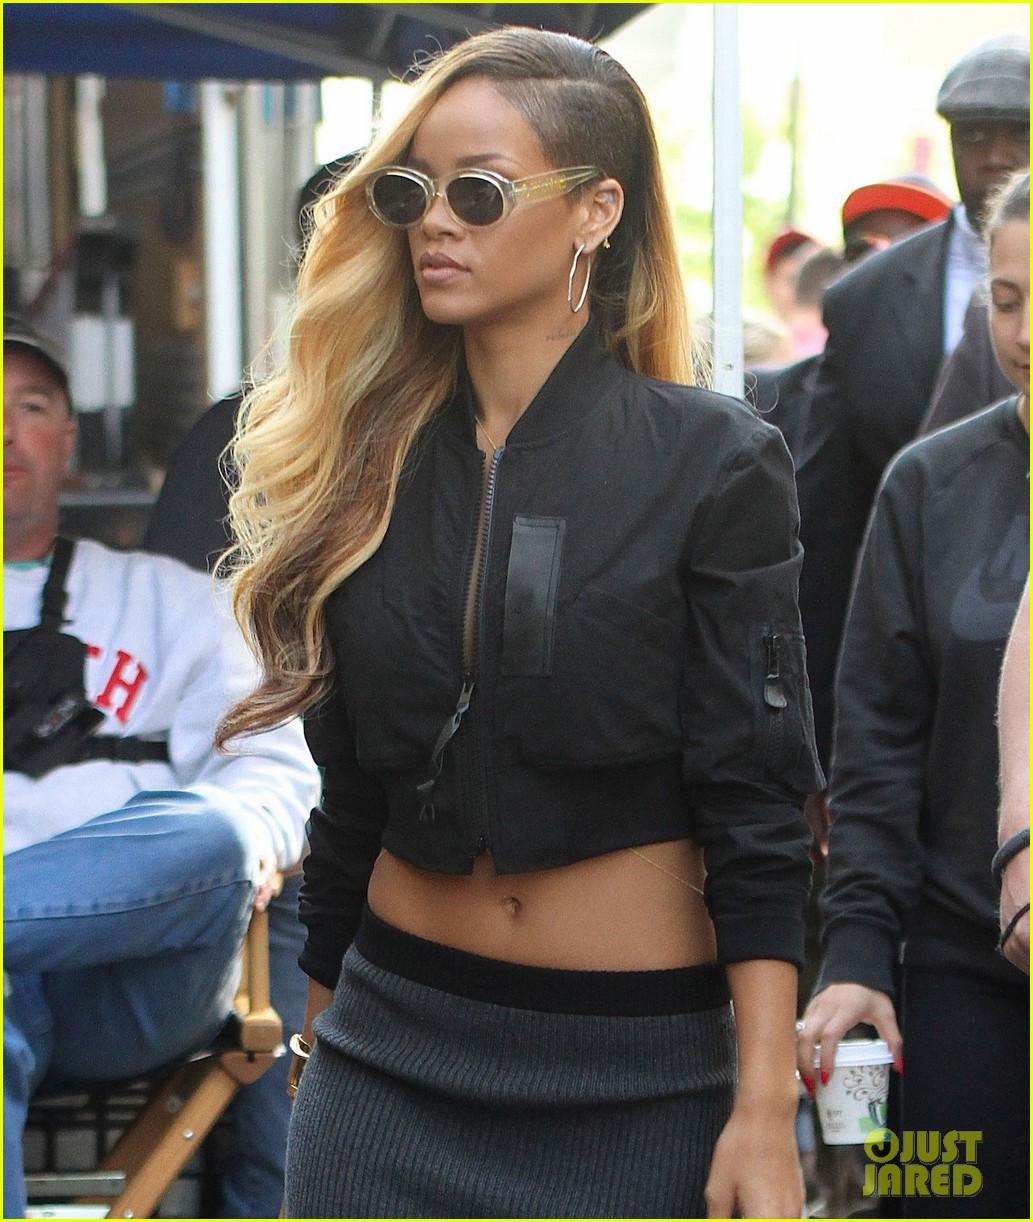 rihanna bares midriff for commercial shoot in nyc 05